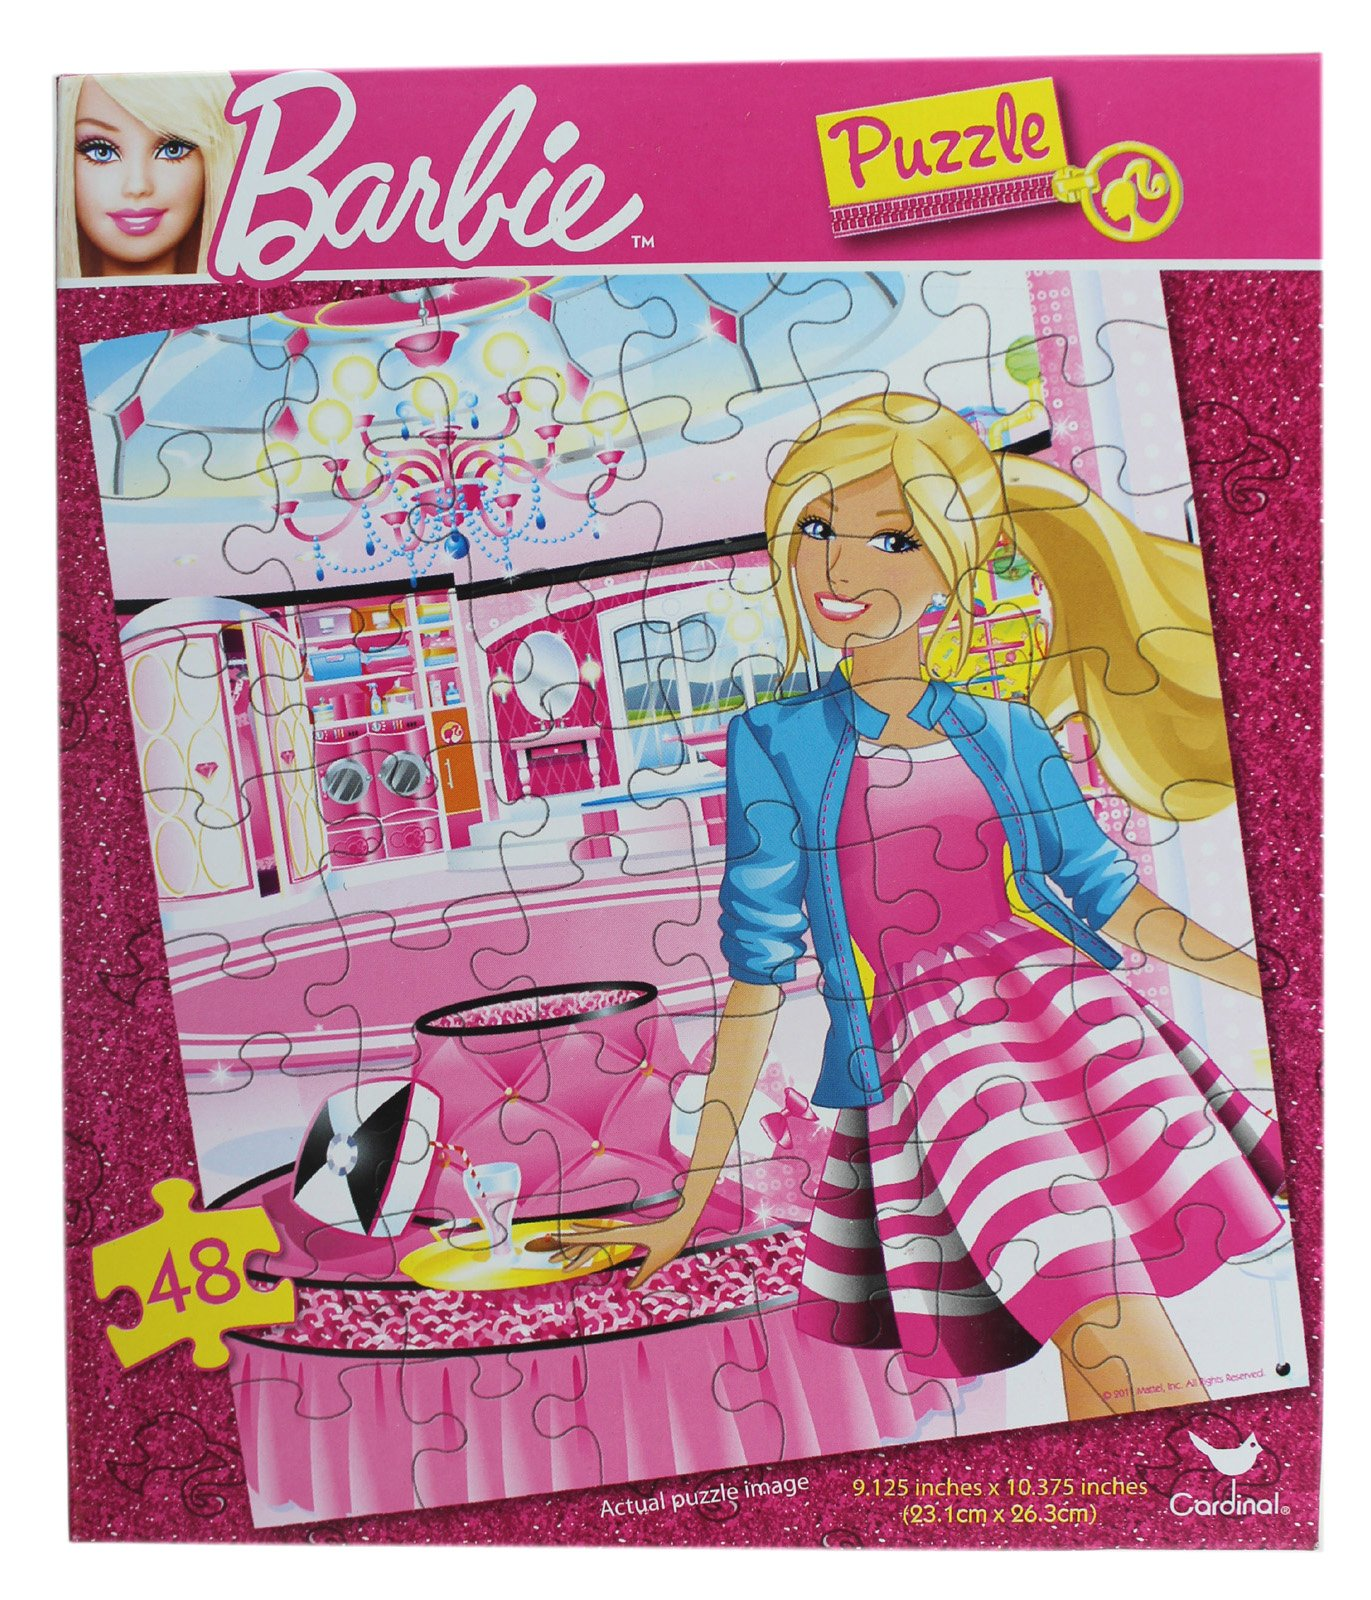 Buy Barbie Puzzles Now!